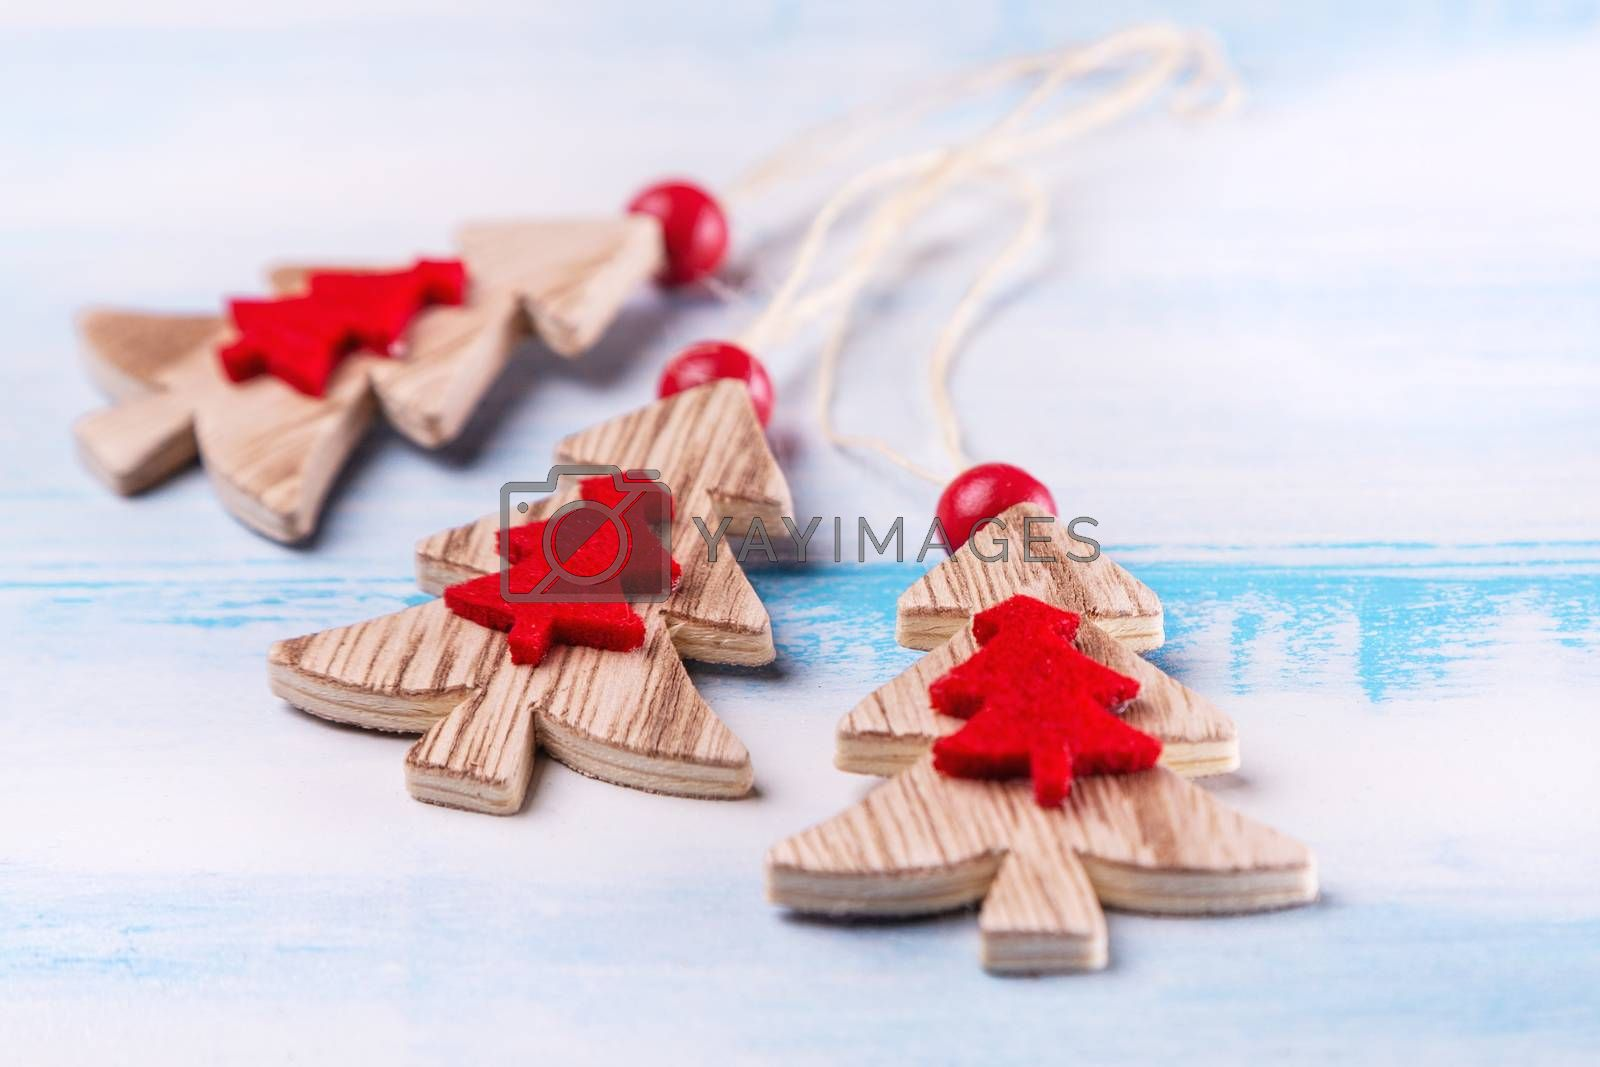 Christmas background with xmas tree, on a wooden blue and white background. Merry christmas card. Winter holiday theme. Happy New Year. Christmas decoration on wooden background, close-up.